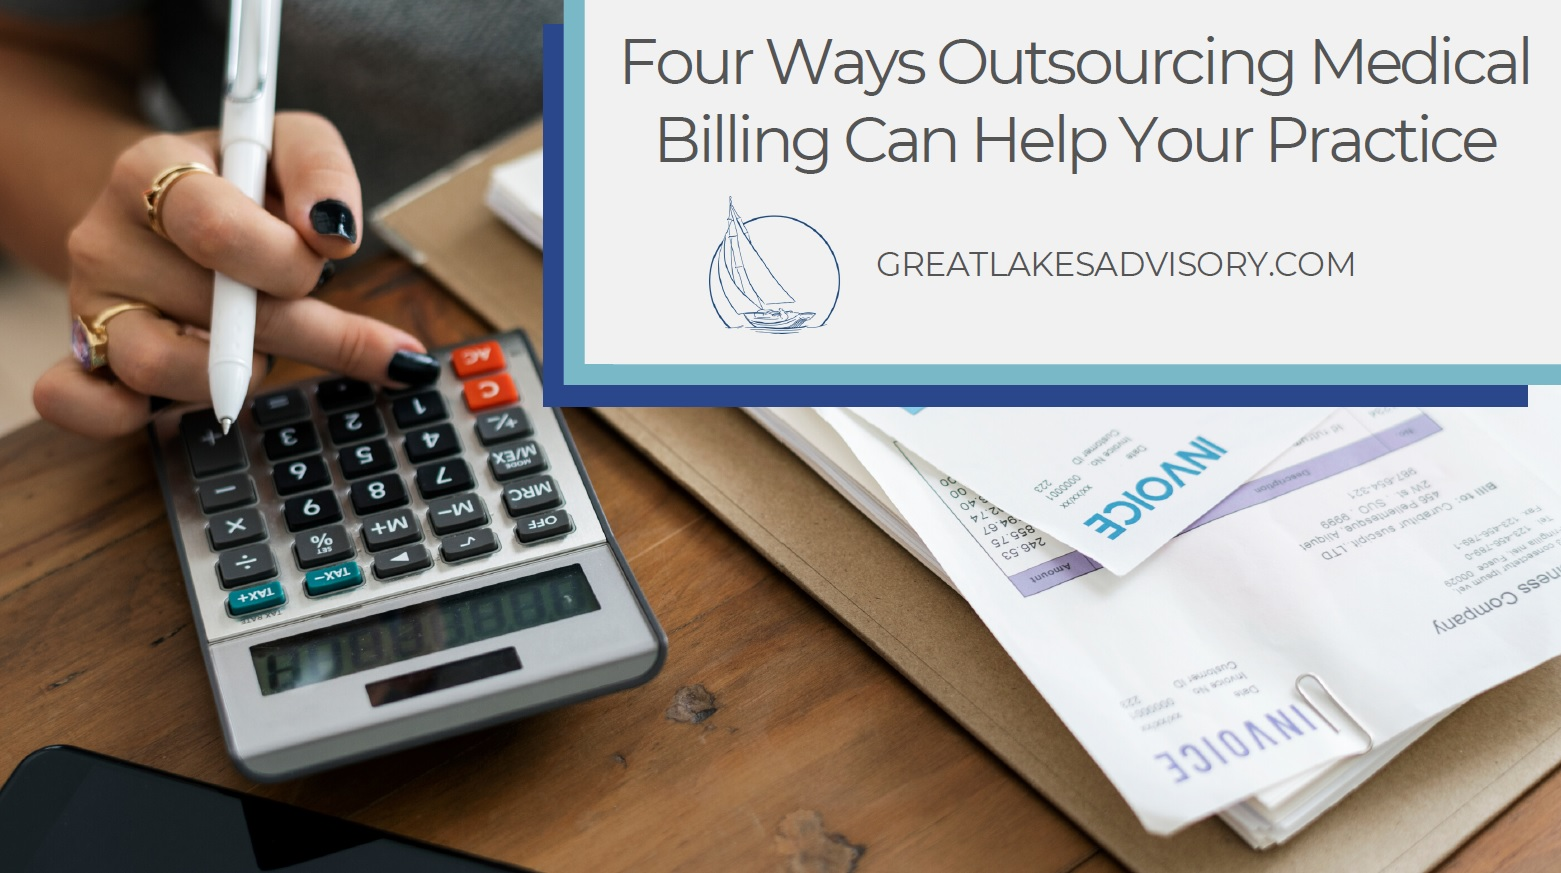 Four Ways Outsourcing Medical Billing Can Help Your Practice